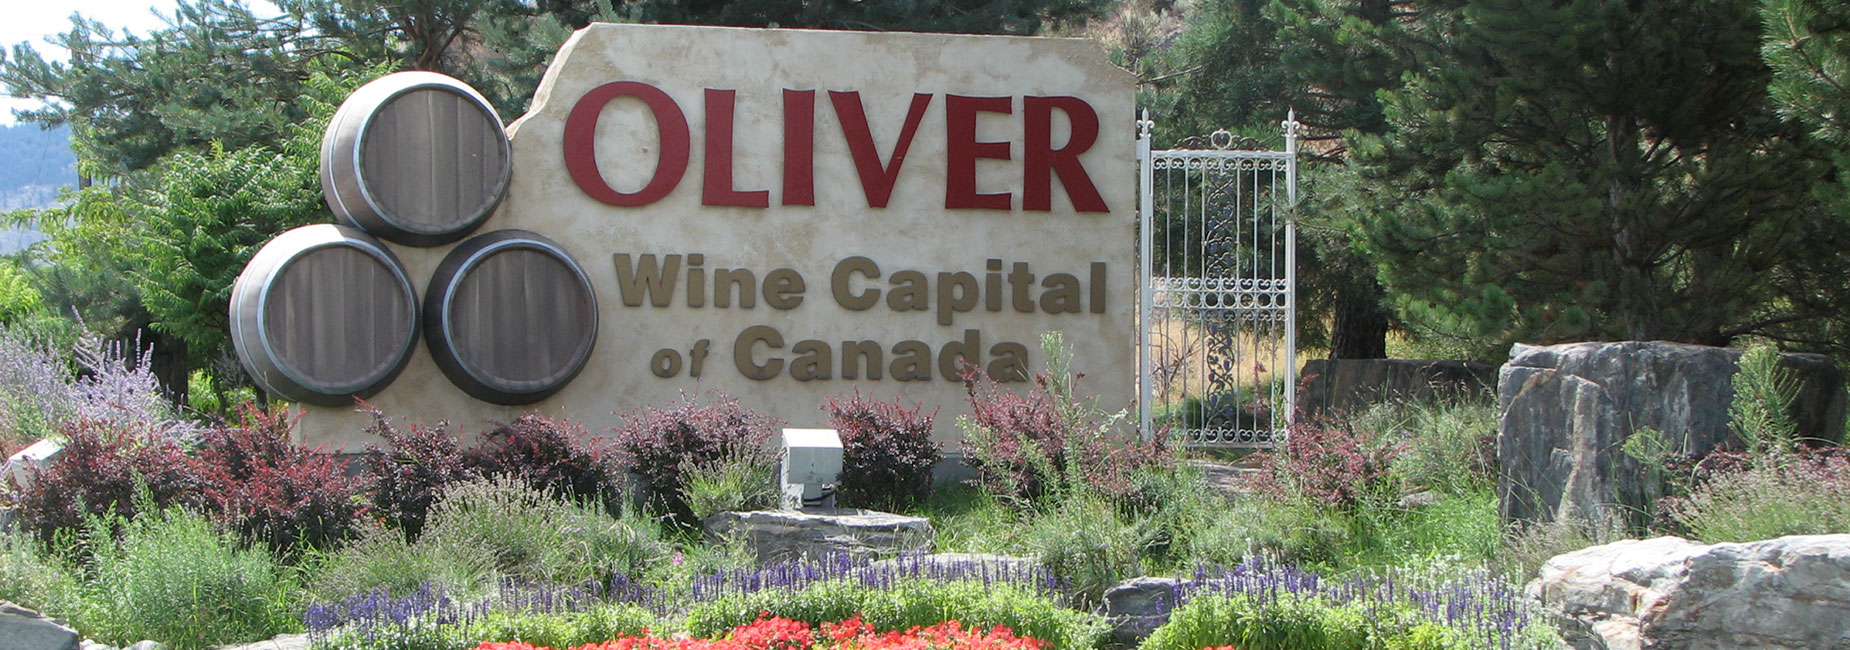 Oliver is known as the Wine Capital of Canada and offers several wineries where you can sample the various wines produced by each of those locations.